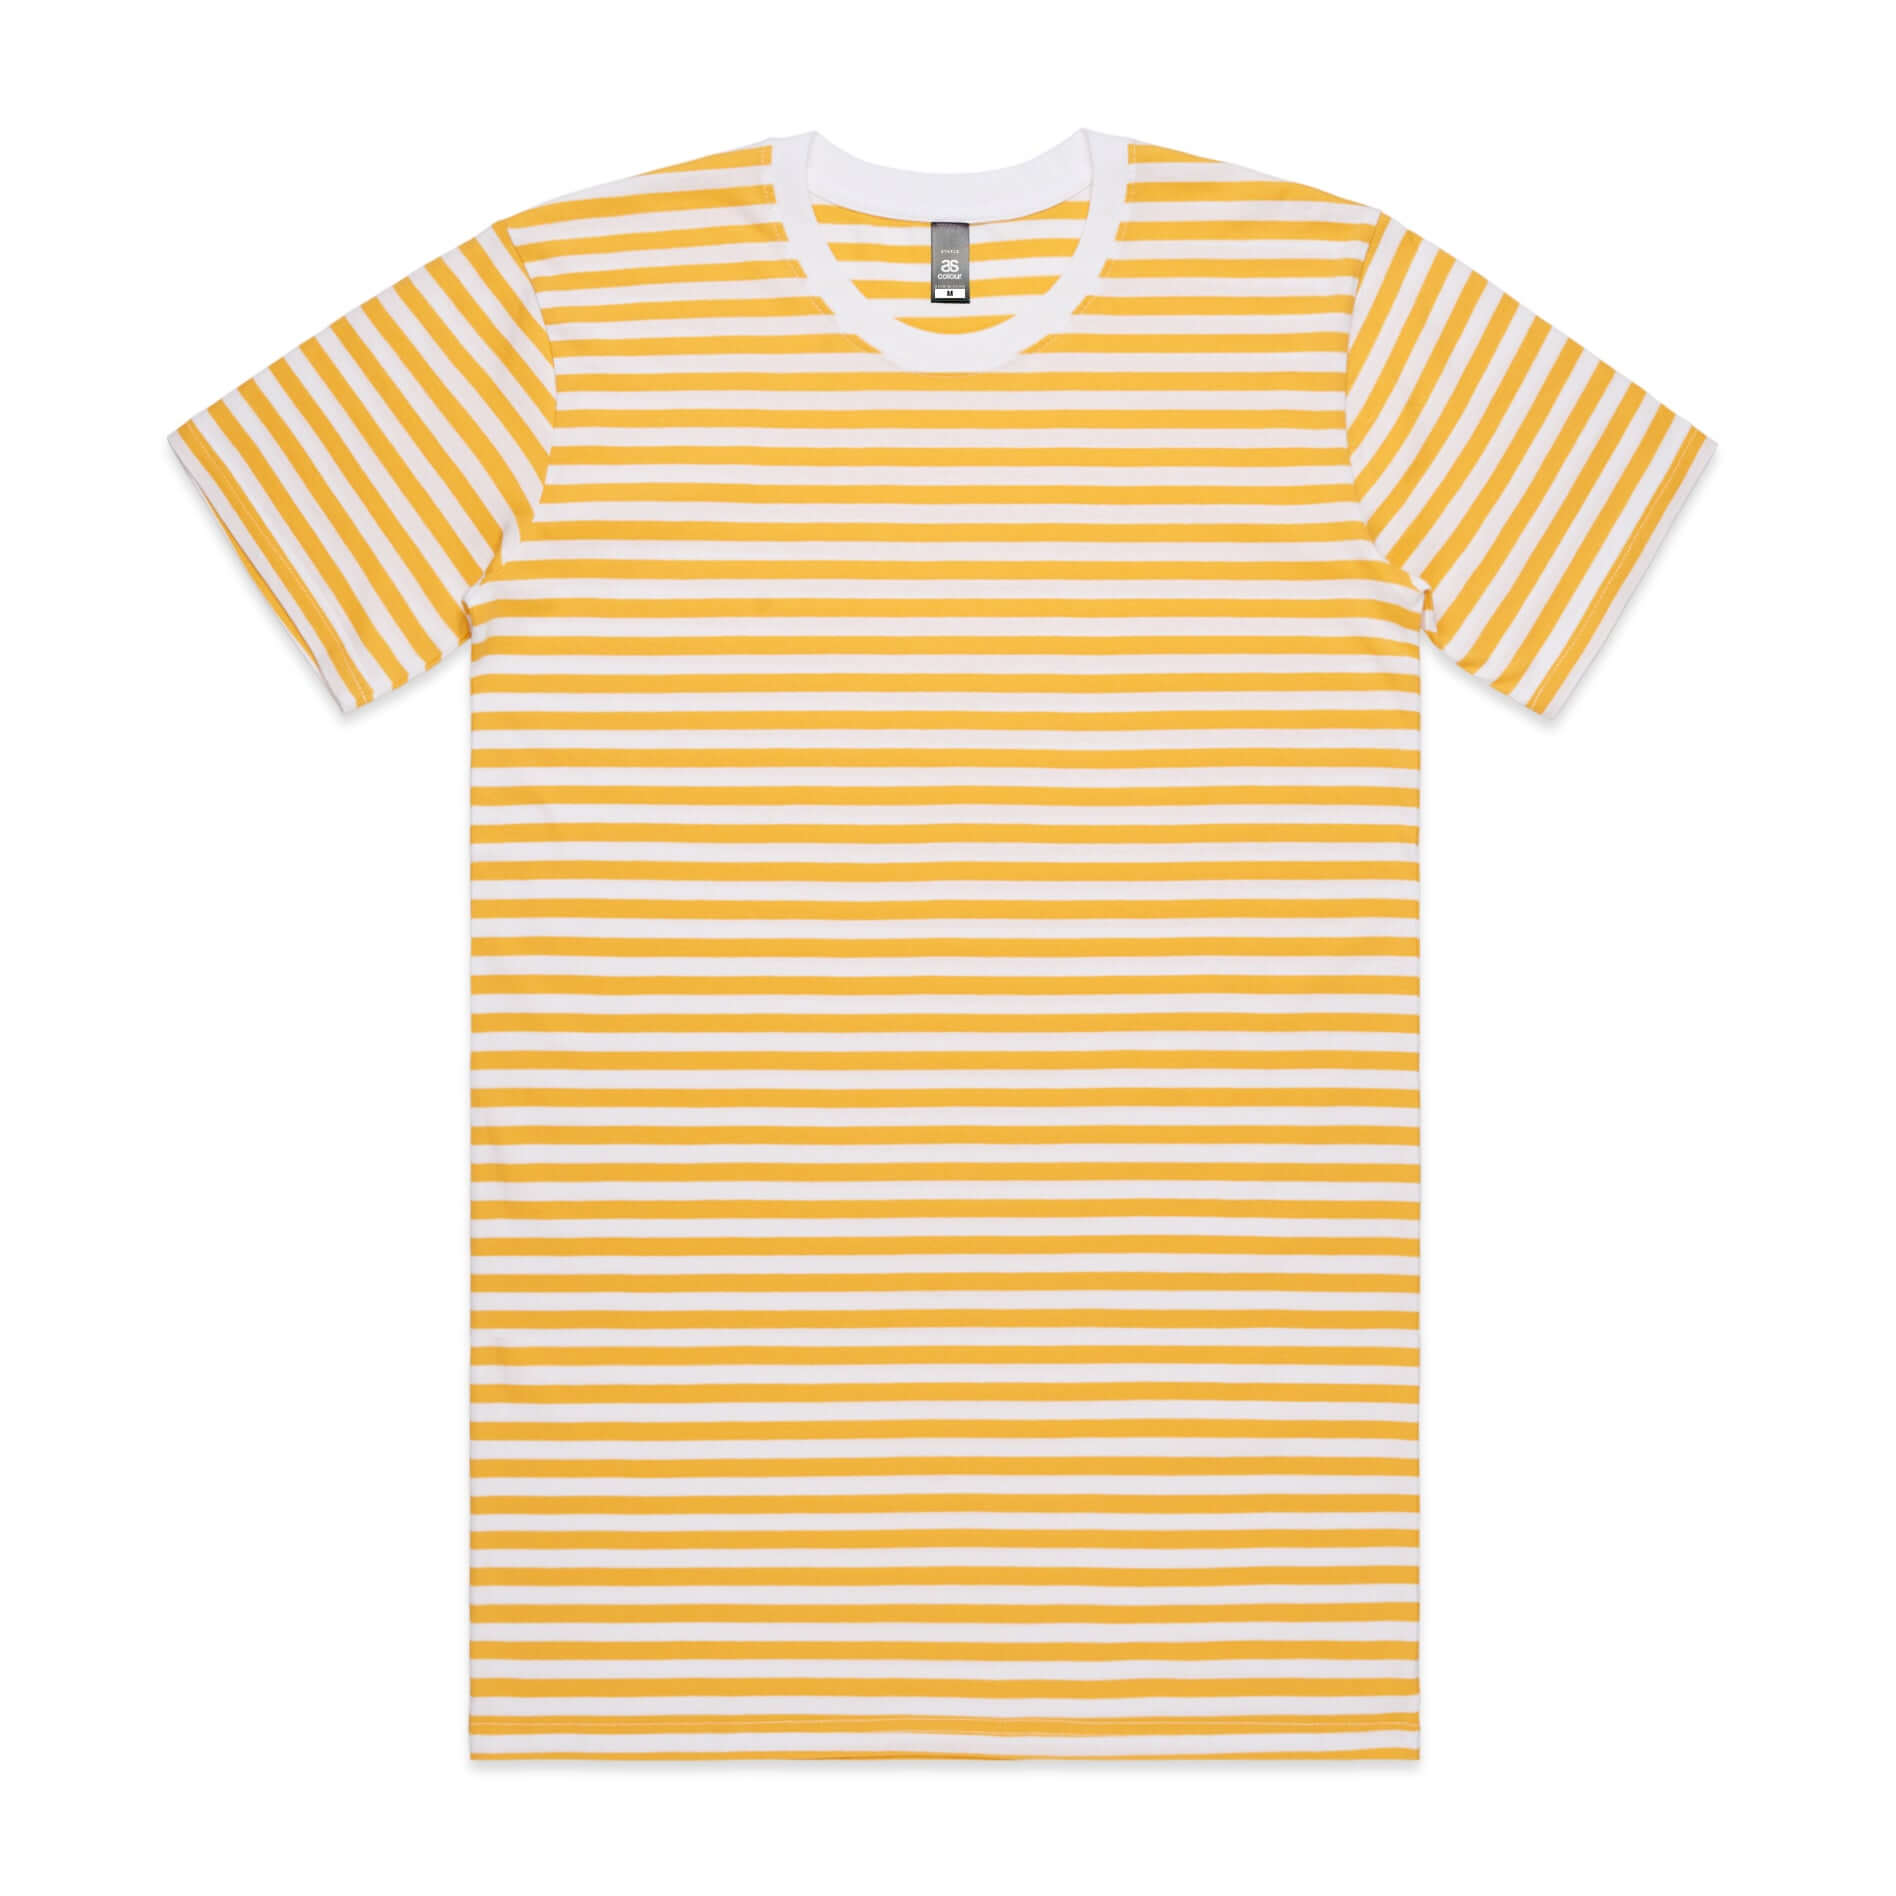 AS Colour STAPLE STRIPE TEE - Yellow / White